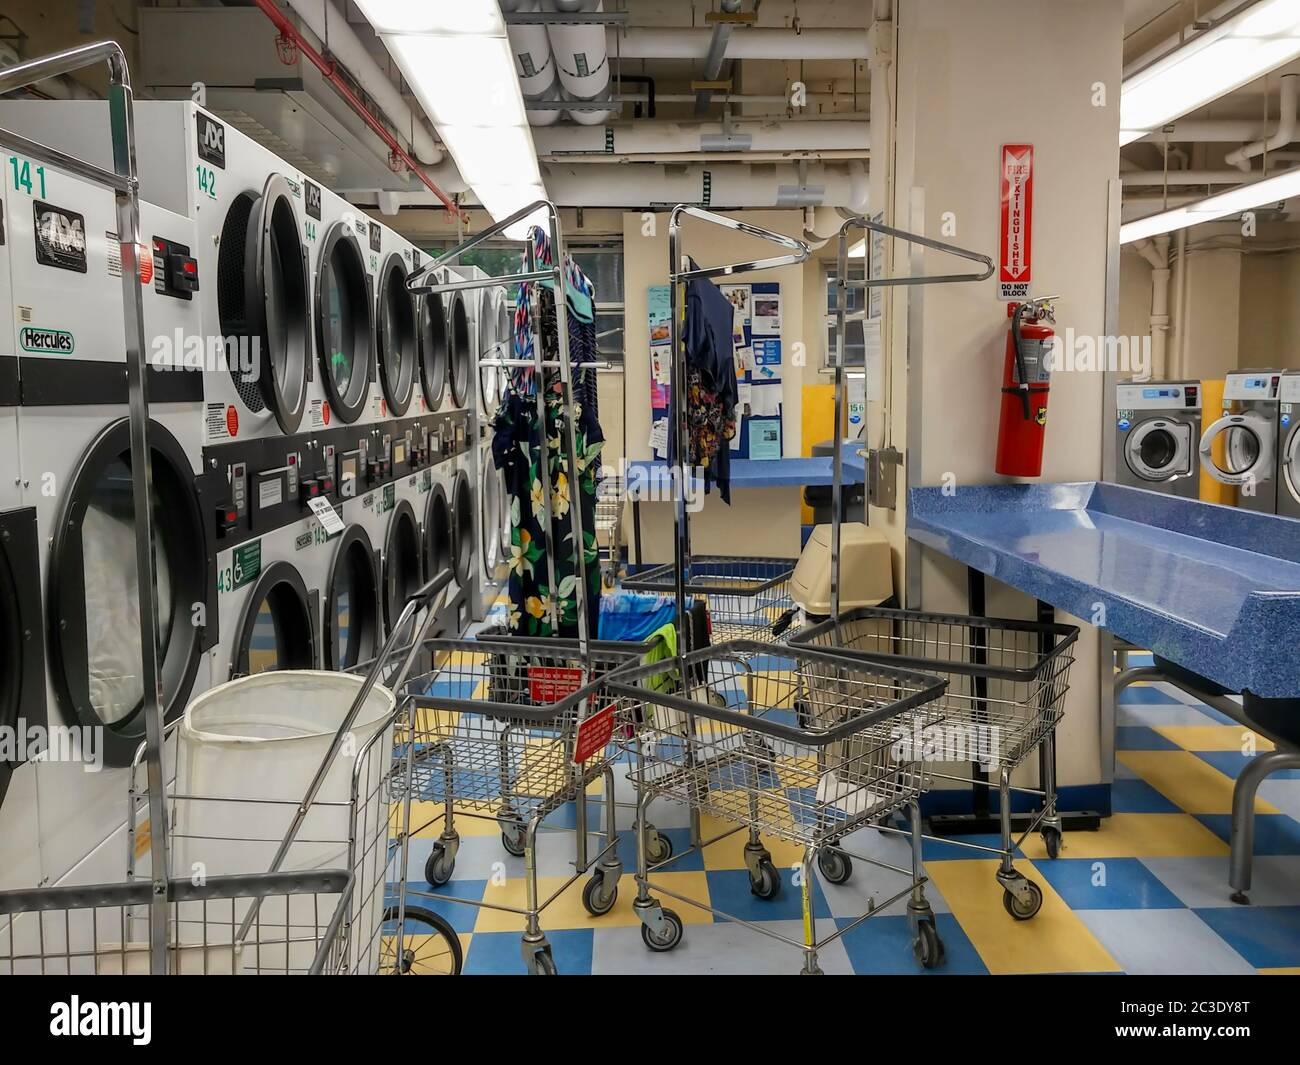 Dryers and carts in a laundry room in New York on Thursday, June 11, 2020. (©Richard B. Levine) Stock Photo